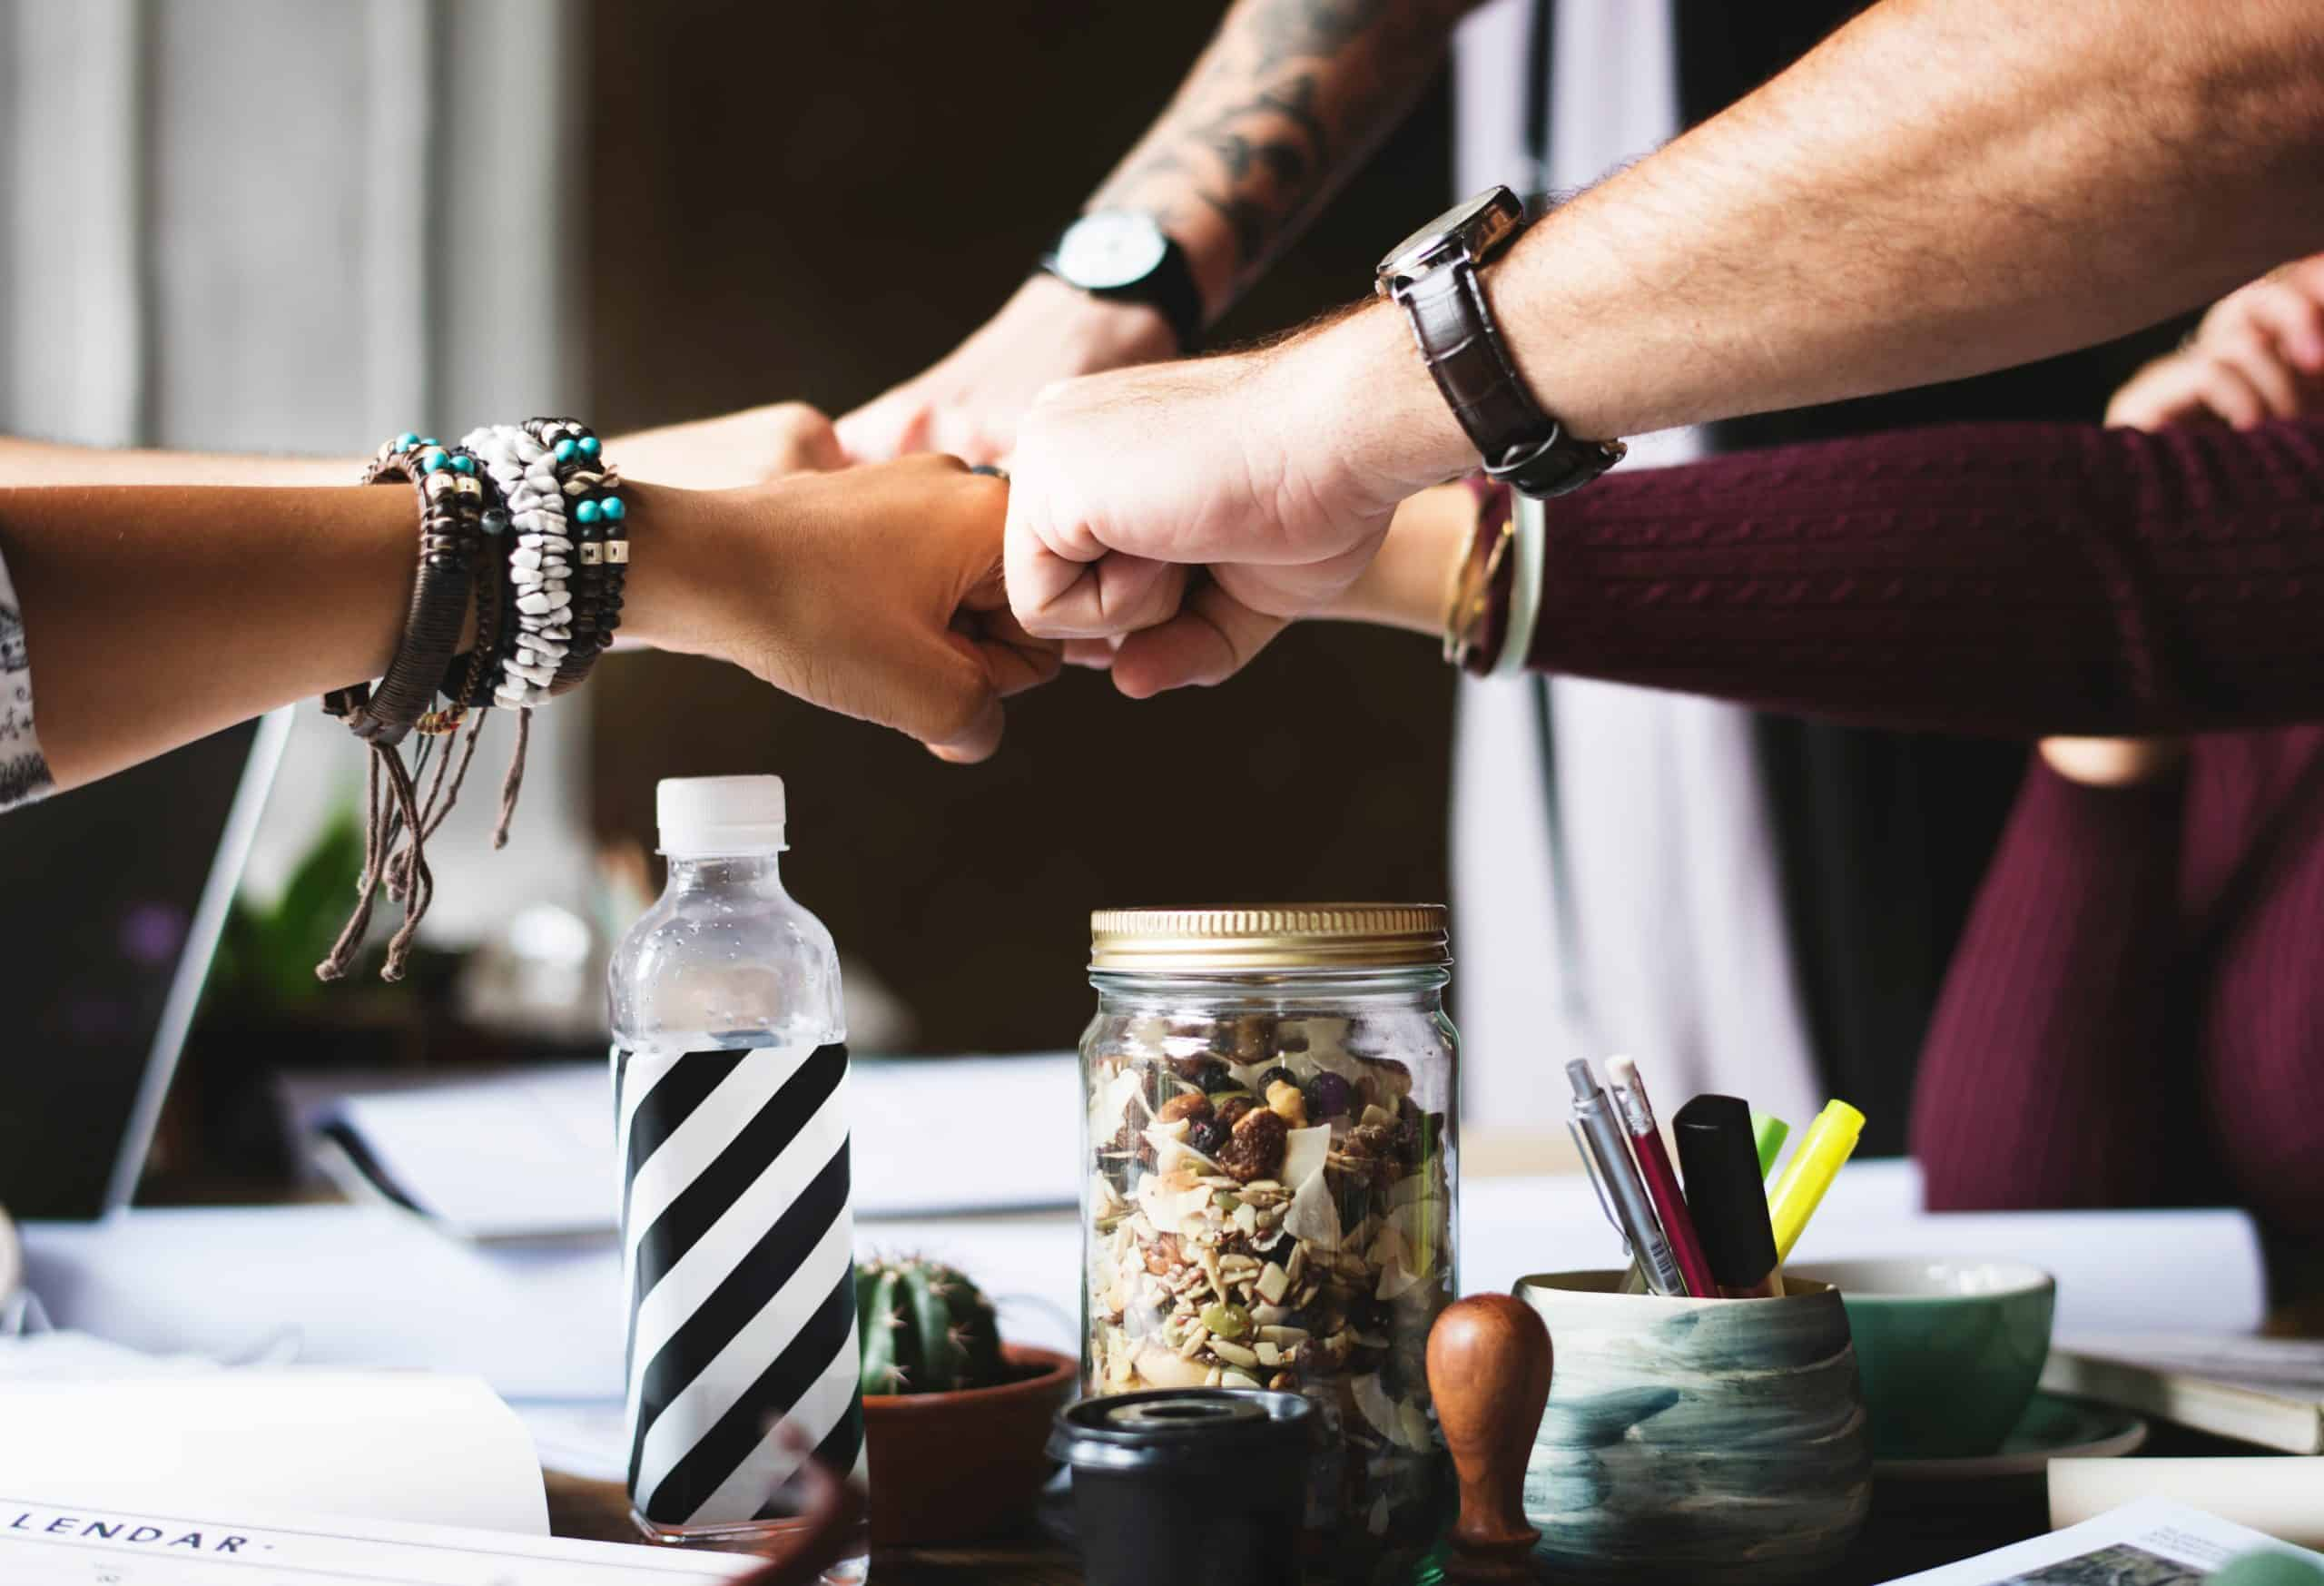 A workplace team is bumping their fists together during a meeting.